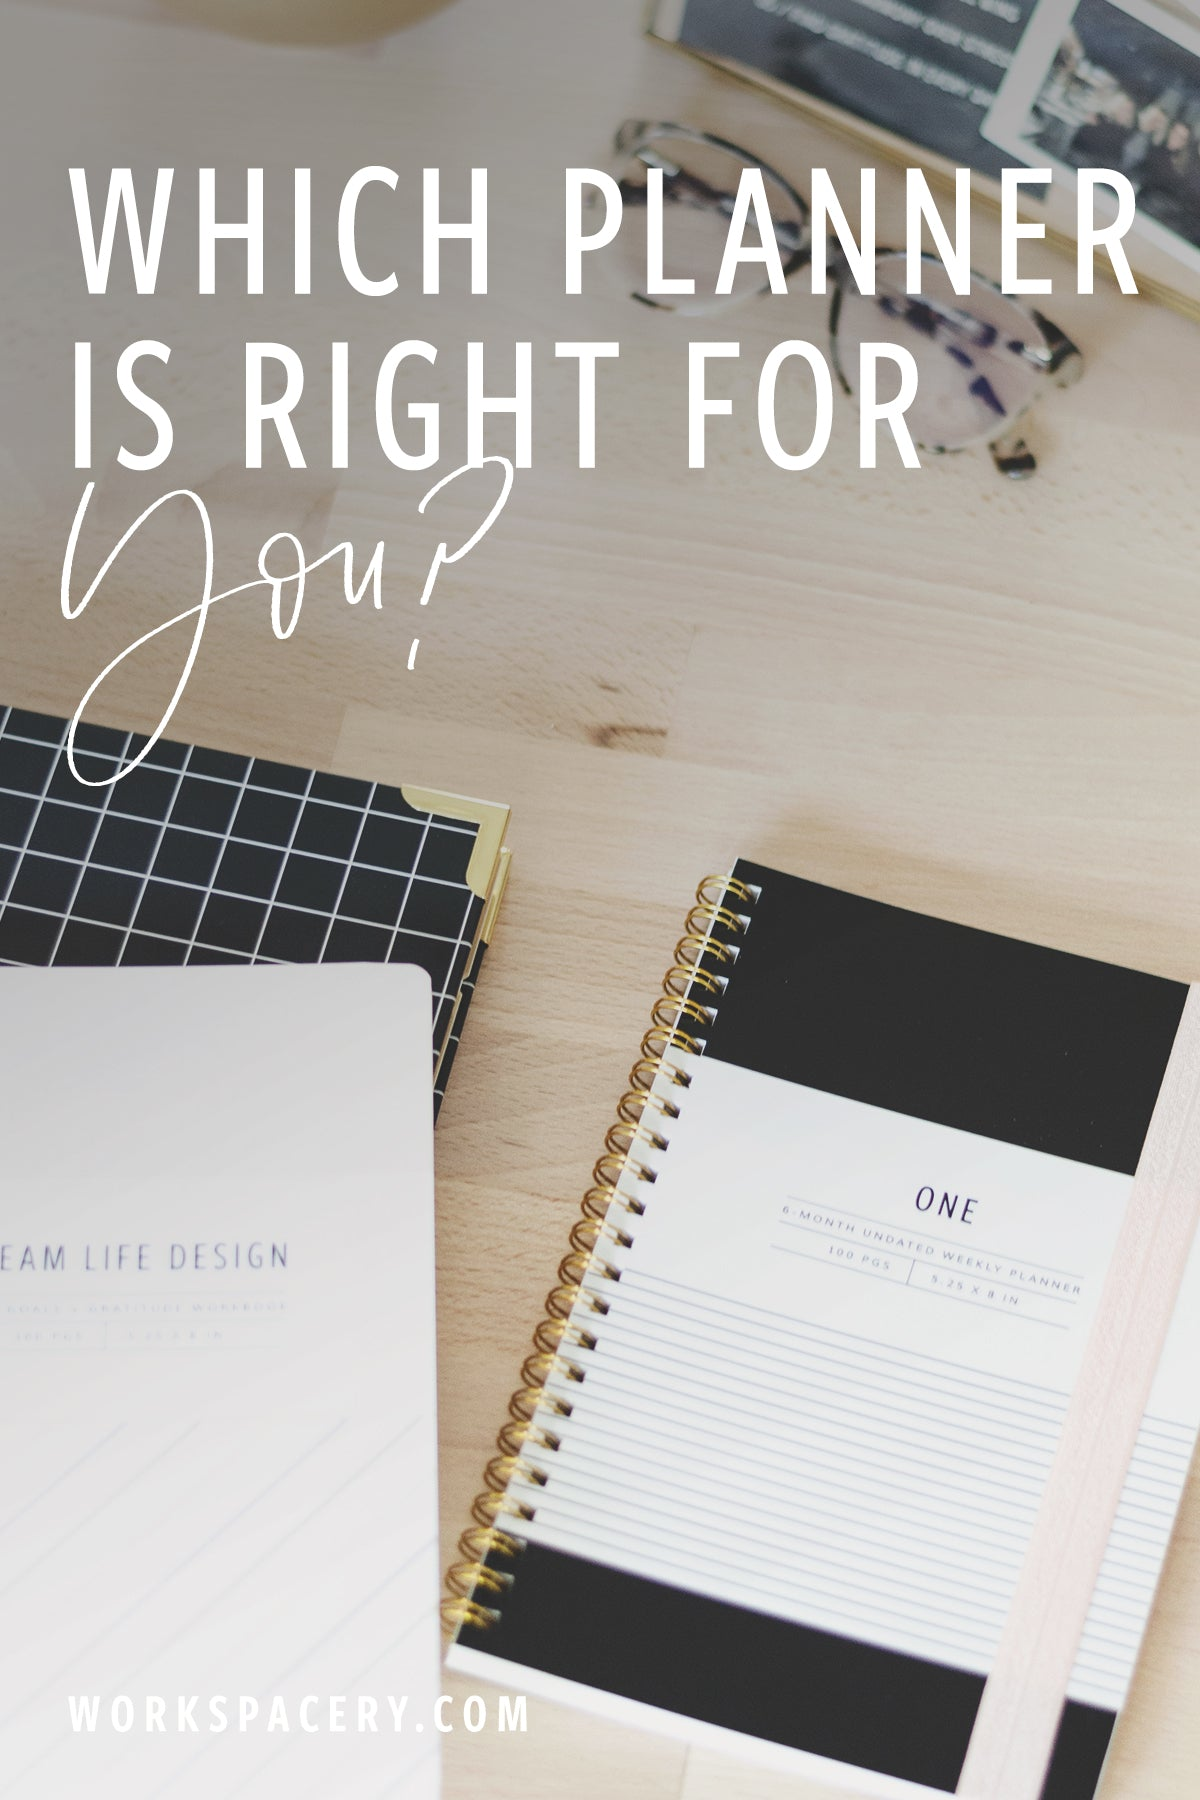 Which Workspacery Planner is right for you?